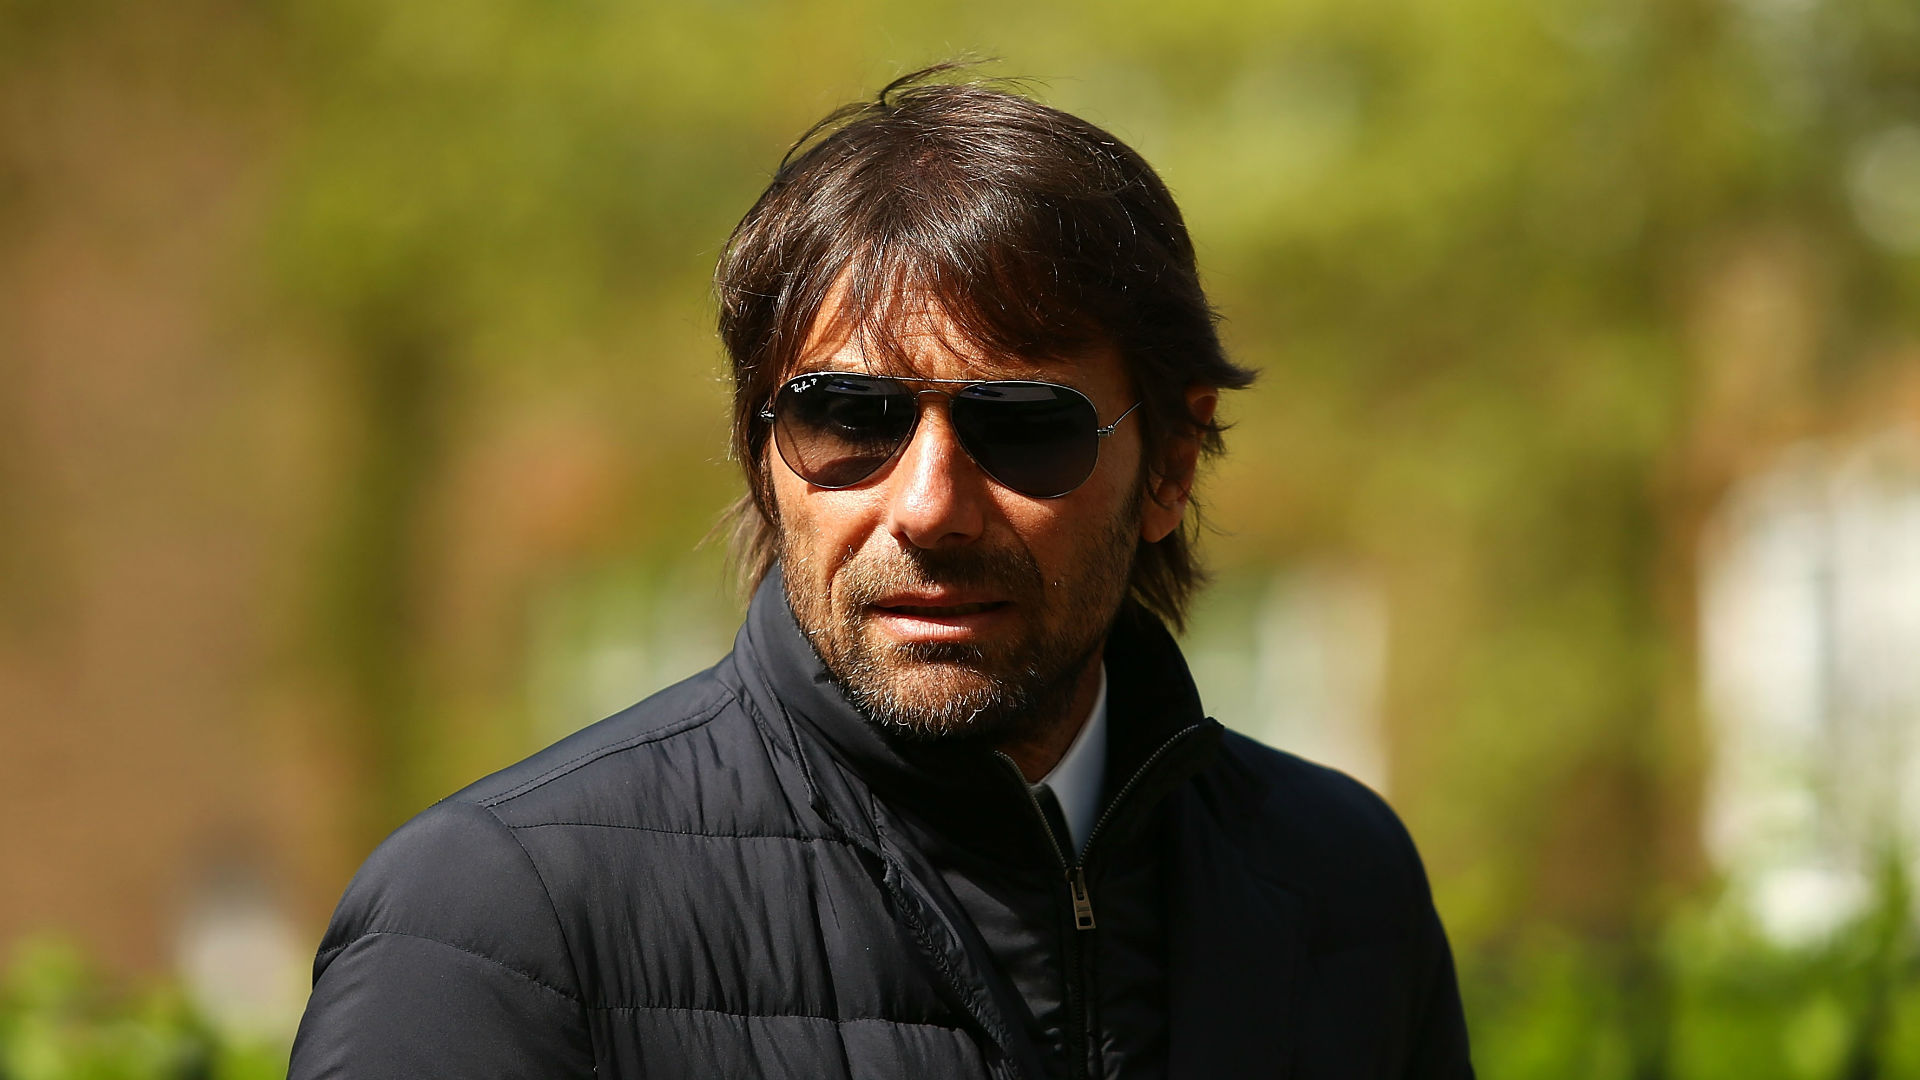 Conte on Inter challenge: This is what I live for